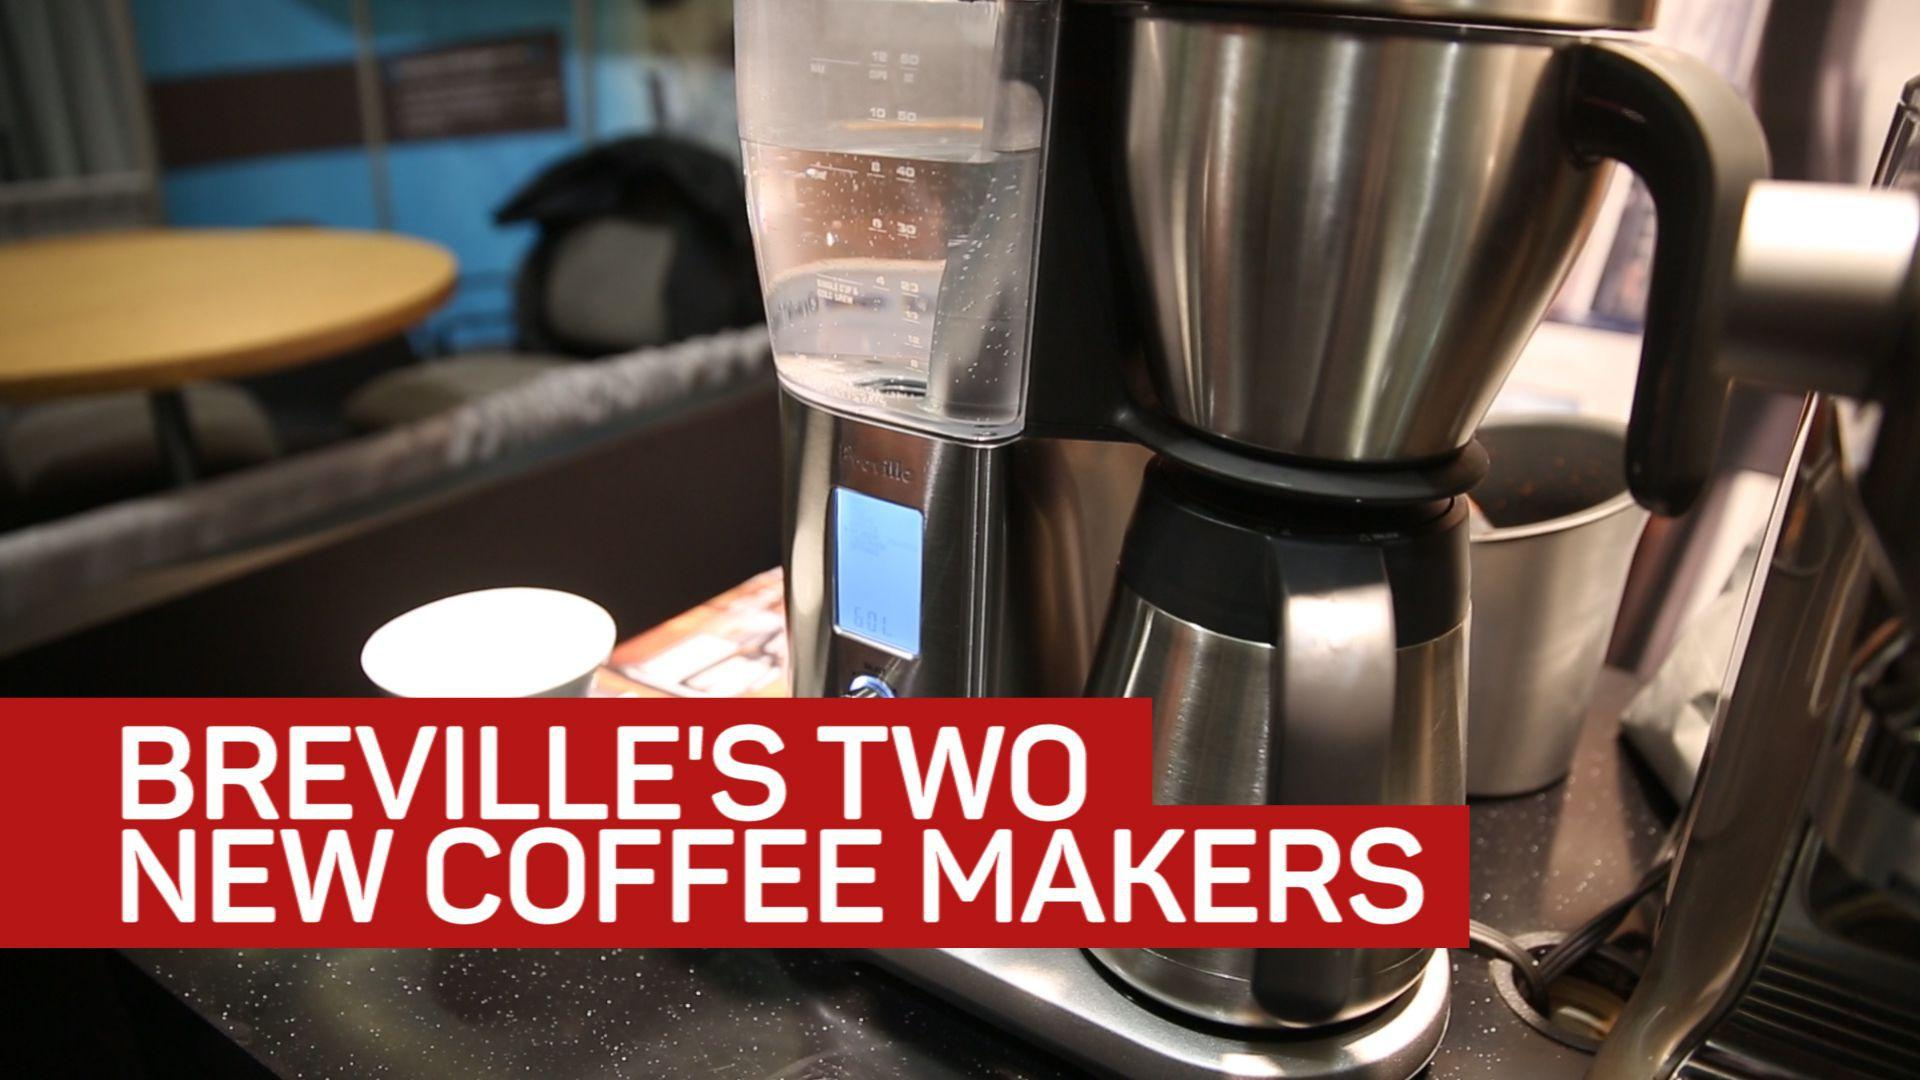 Breville's coffee maker pair brew cups with robotic precision